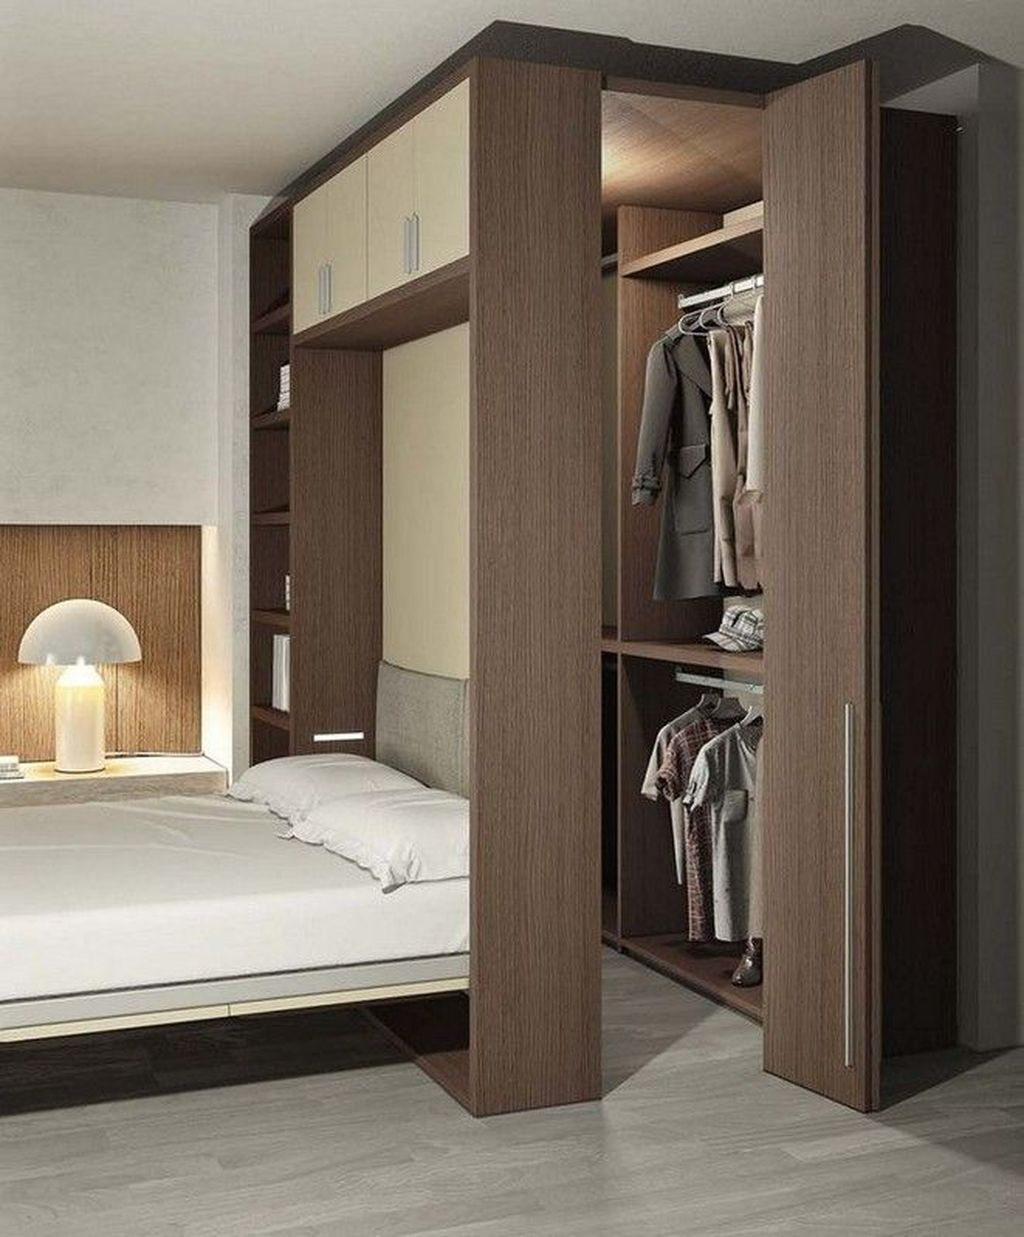 Splendid Wardrobe Design Ideas That You Can Try Current 07